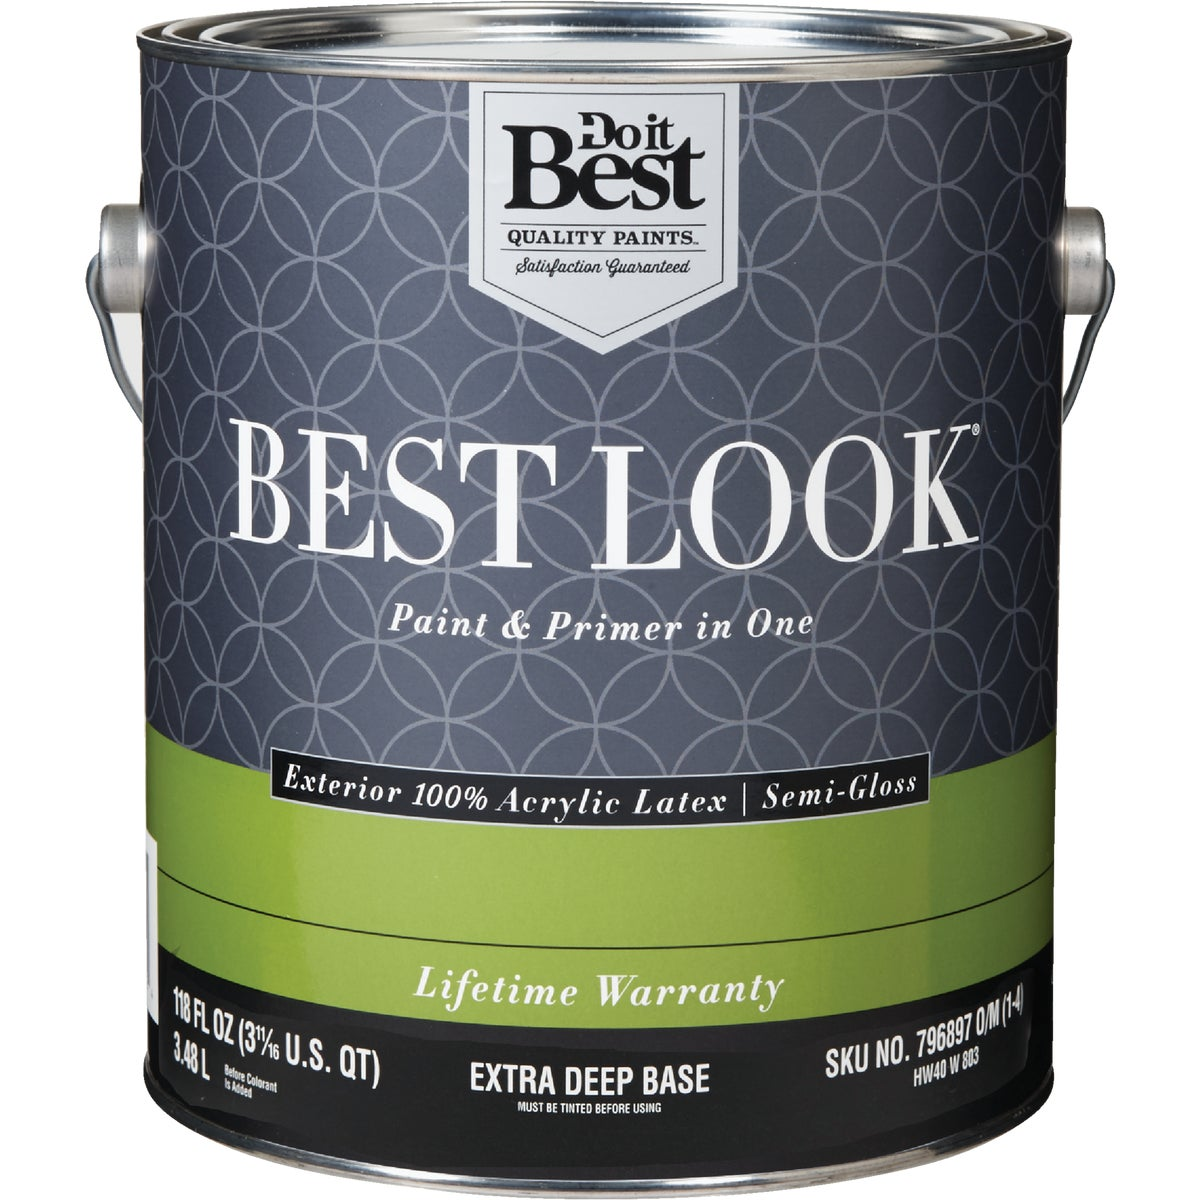 EXT S/G EX DEEP BS PAINT - HW40W0803-16 by Do it Best